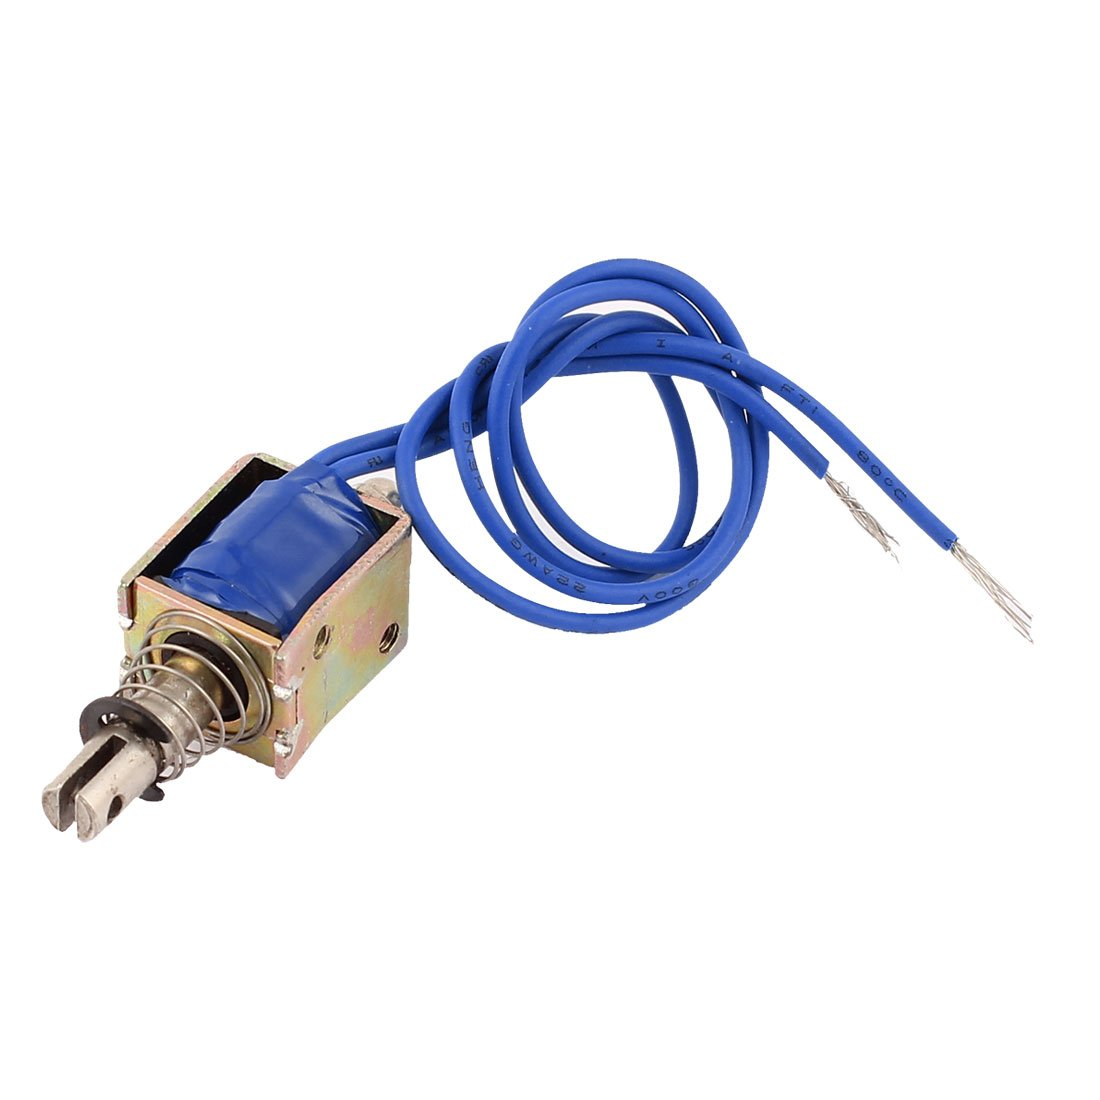 sourcingmap® DC 6V 800mA 40g 10mm Pull Push Type Open Frame Solenoid Electromagnet a15071800ux0544